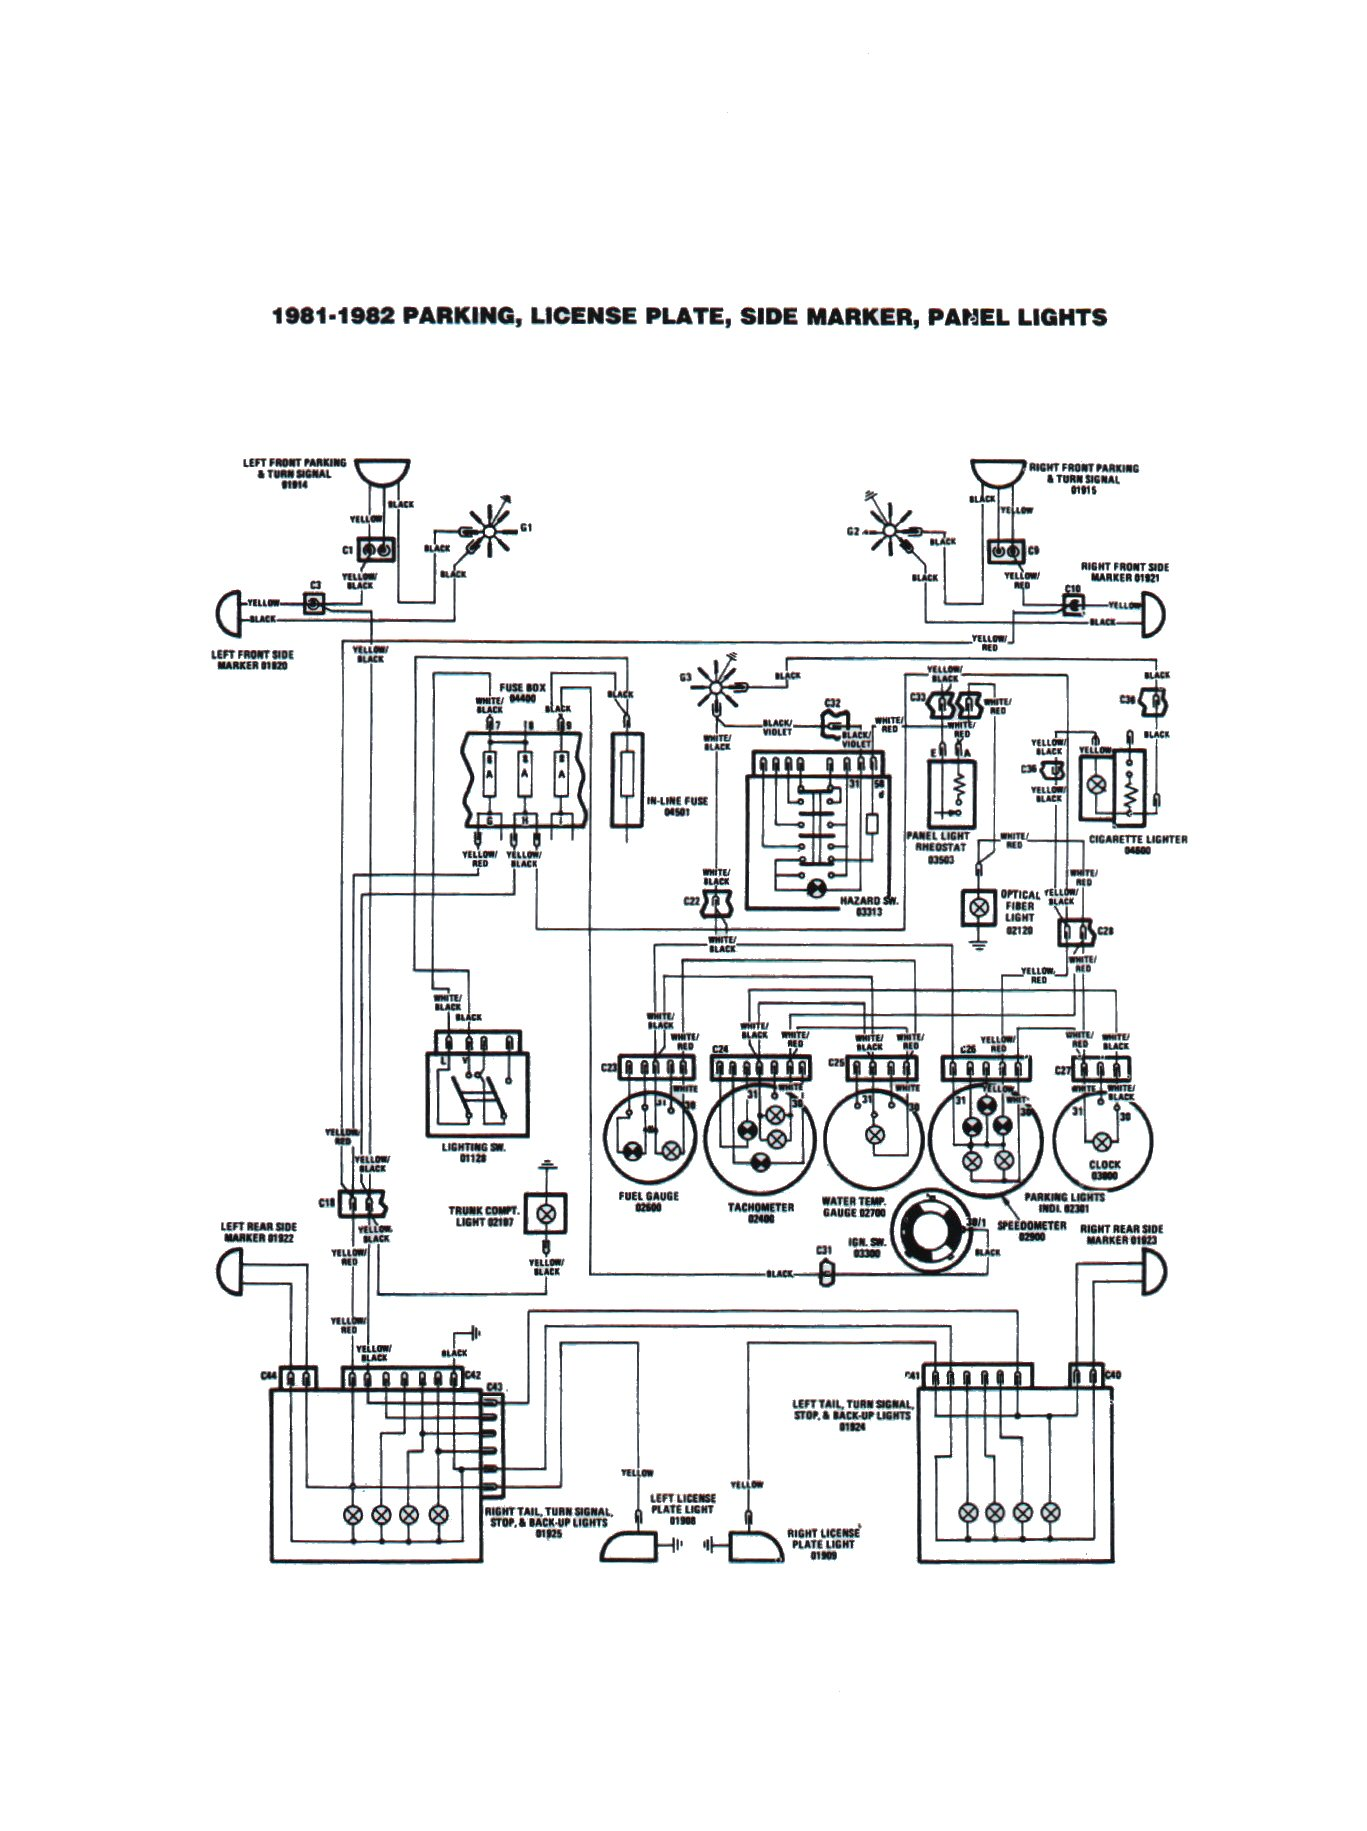 79 Fiat Spider Wiring Diagram Opinions About International Electrical Diagrams 124 Schemes Rh Globallistics Com 2000 4700 1976 Ford Alternator